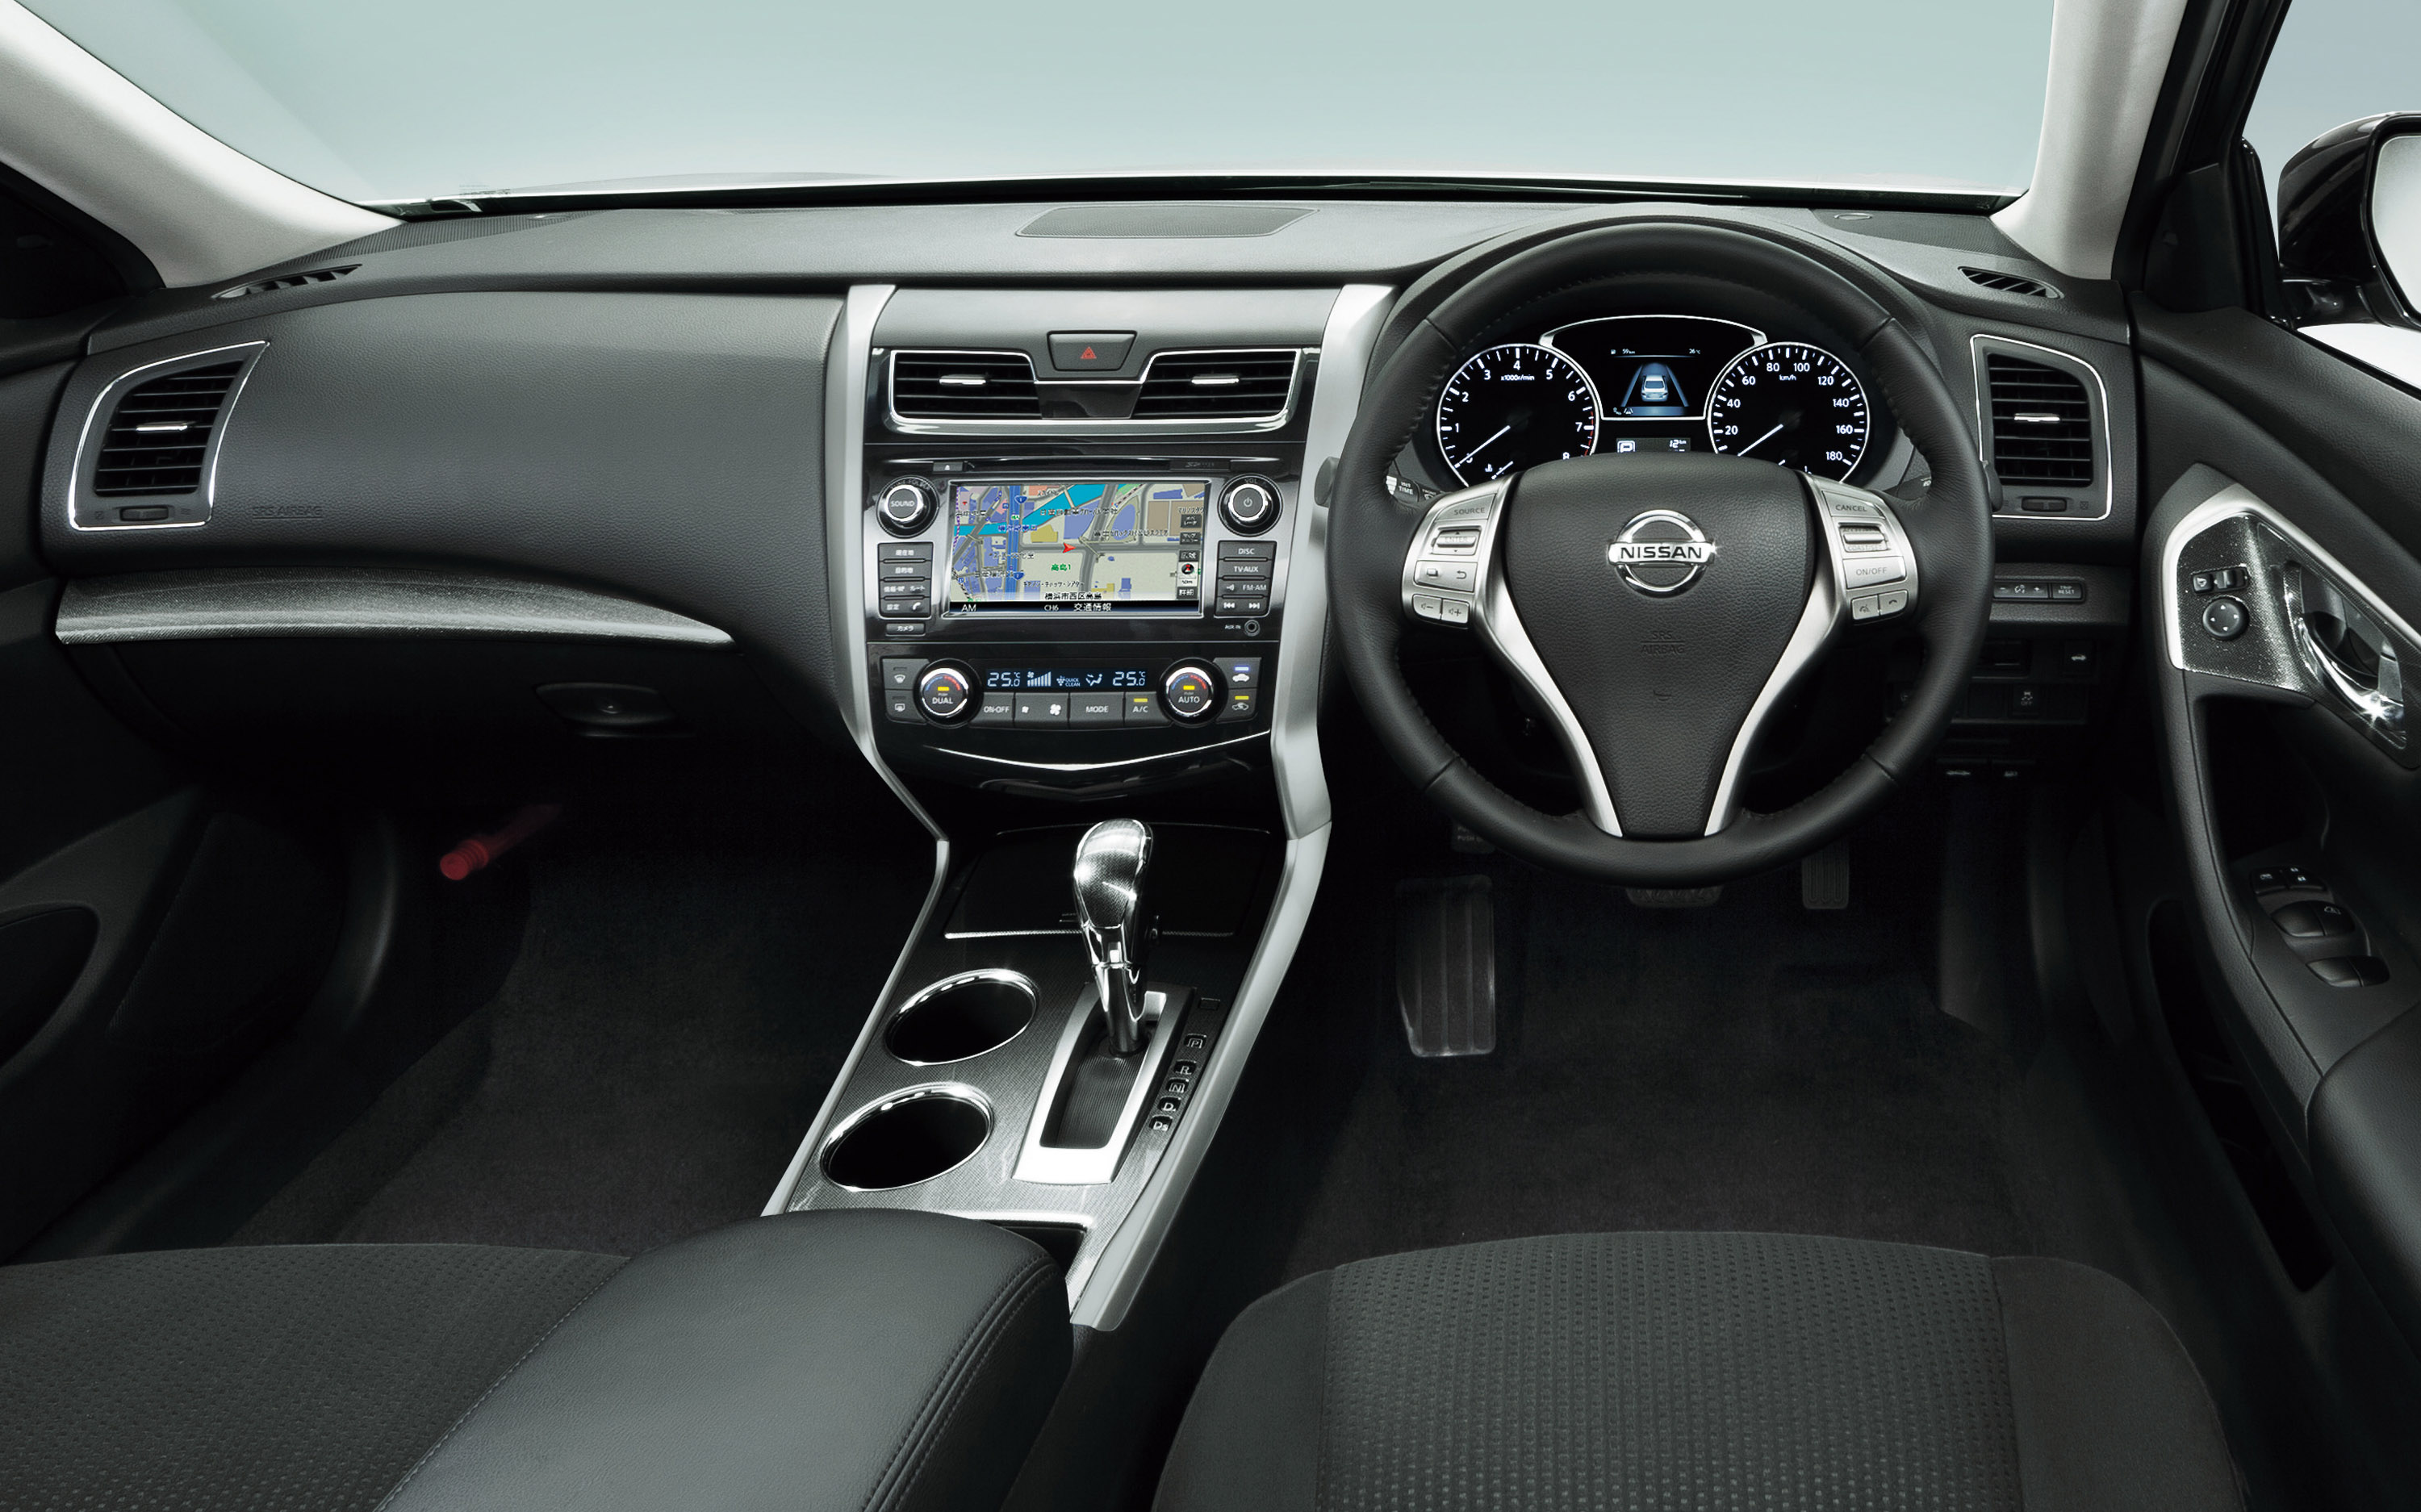 2014 Nissan Teana - Picture 93862